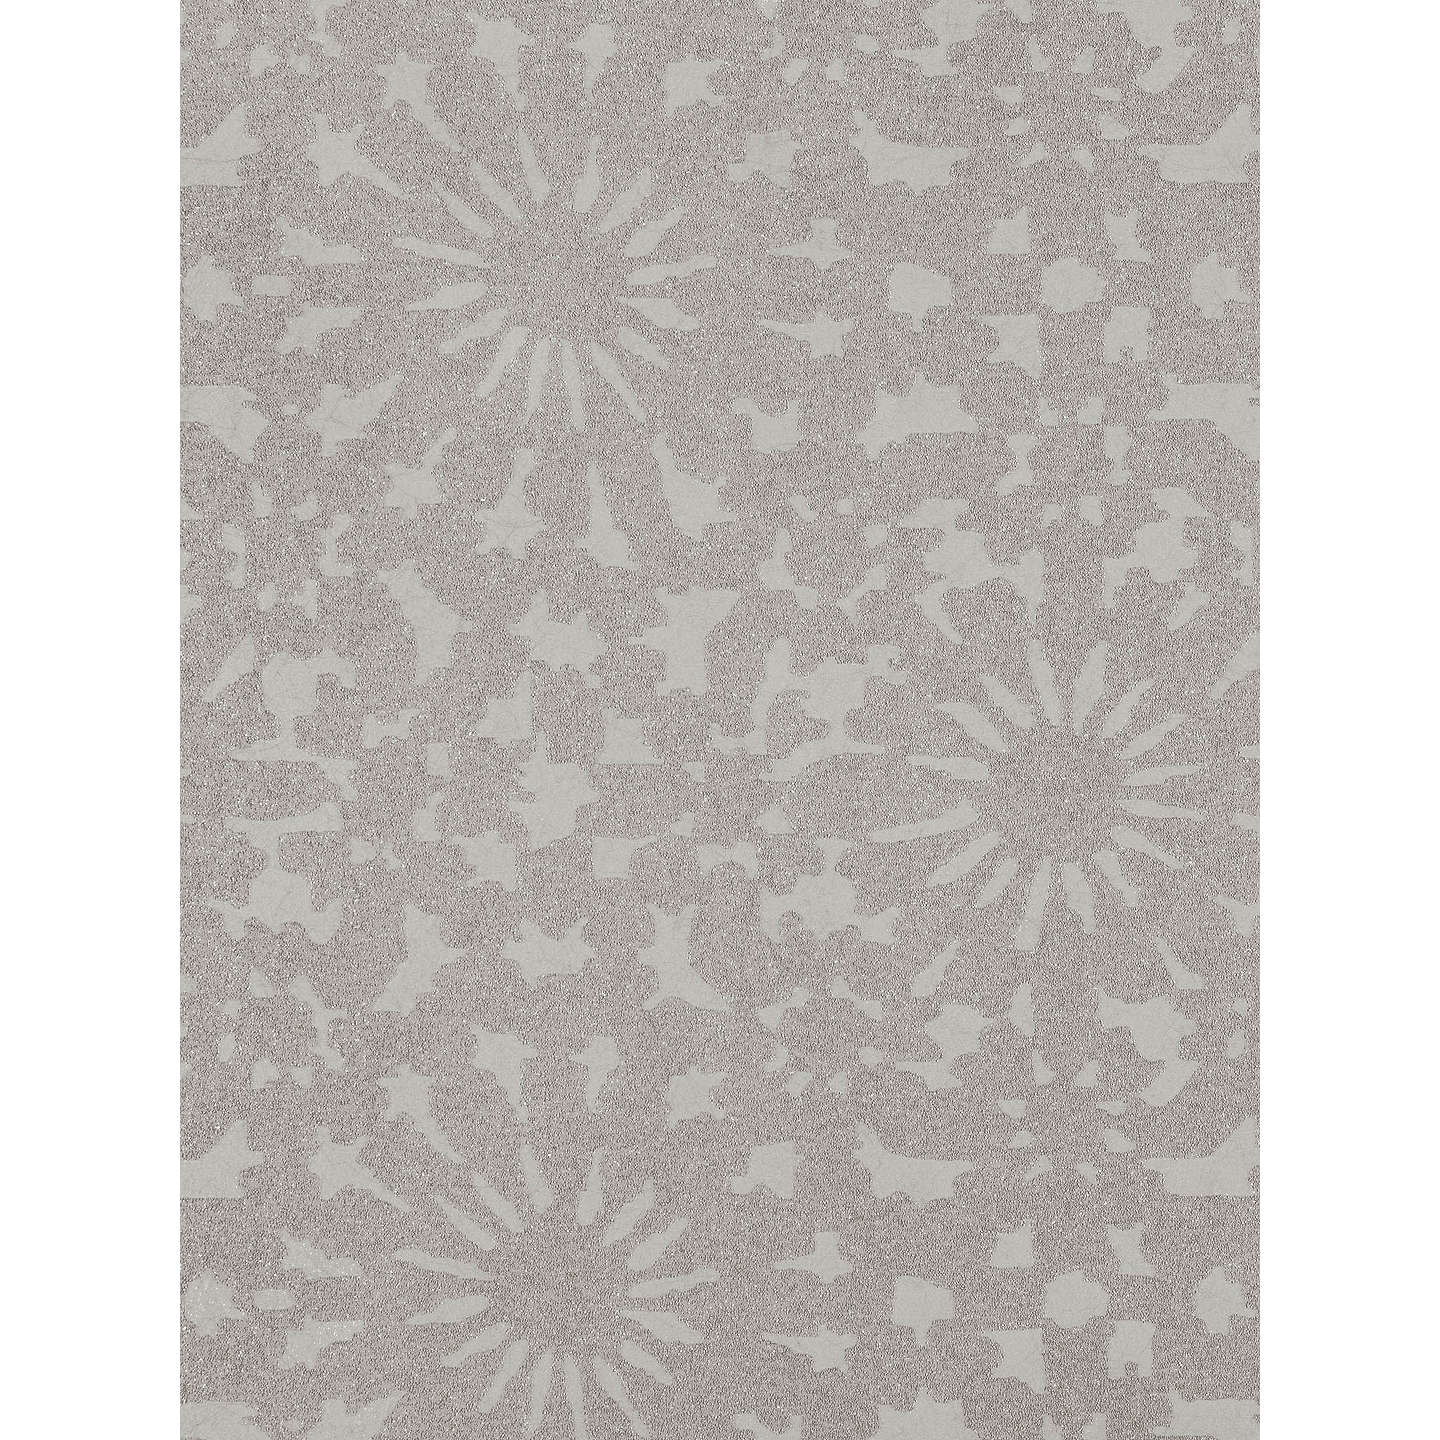 BuyRomo Merletto Paste The Wall Wallpaper Silver W398 06 Online At Johnlewis